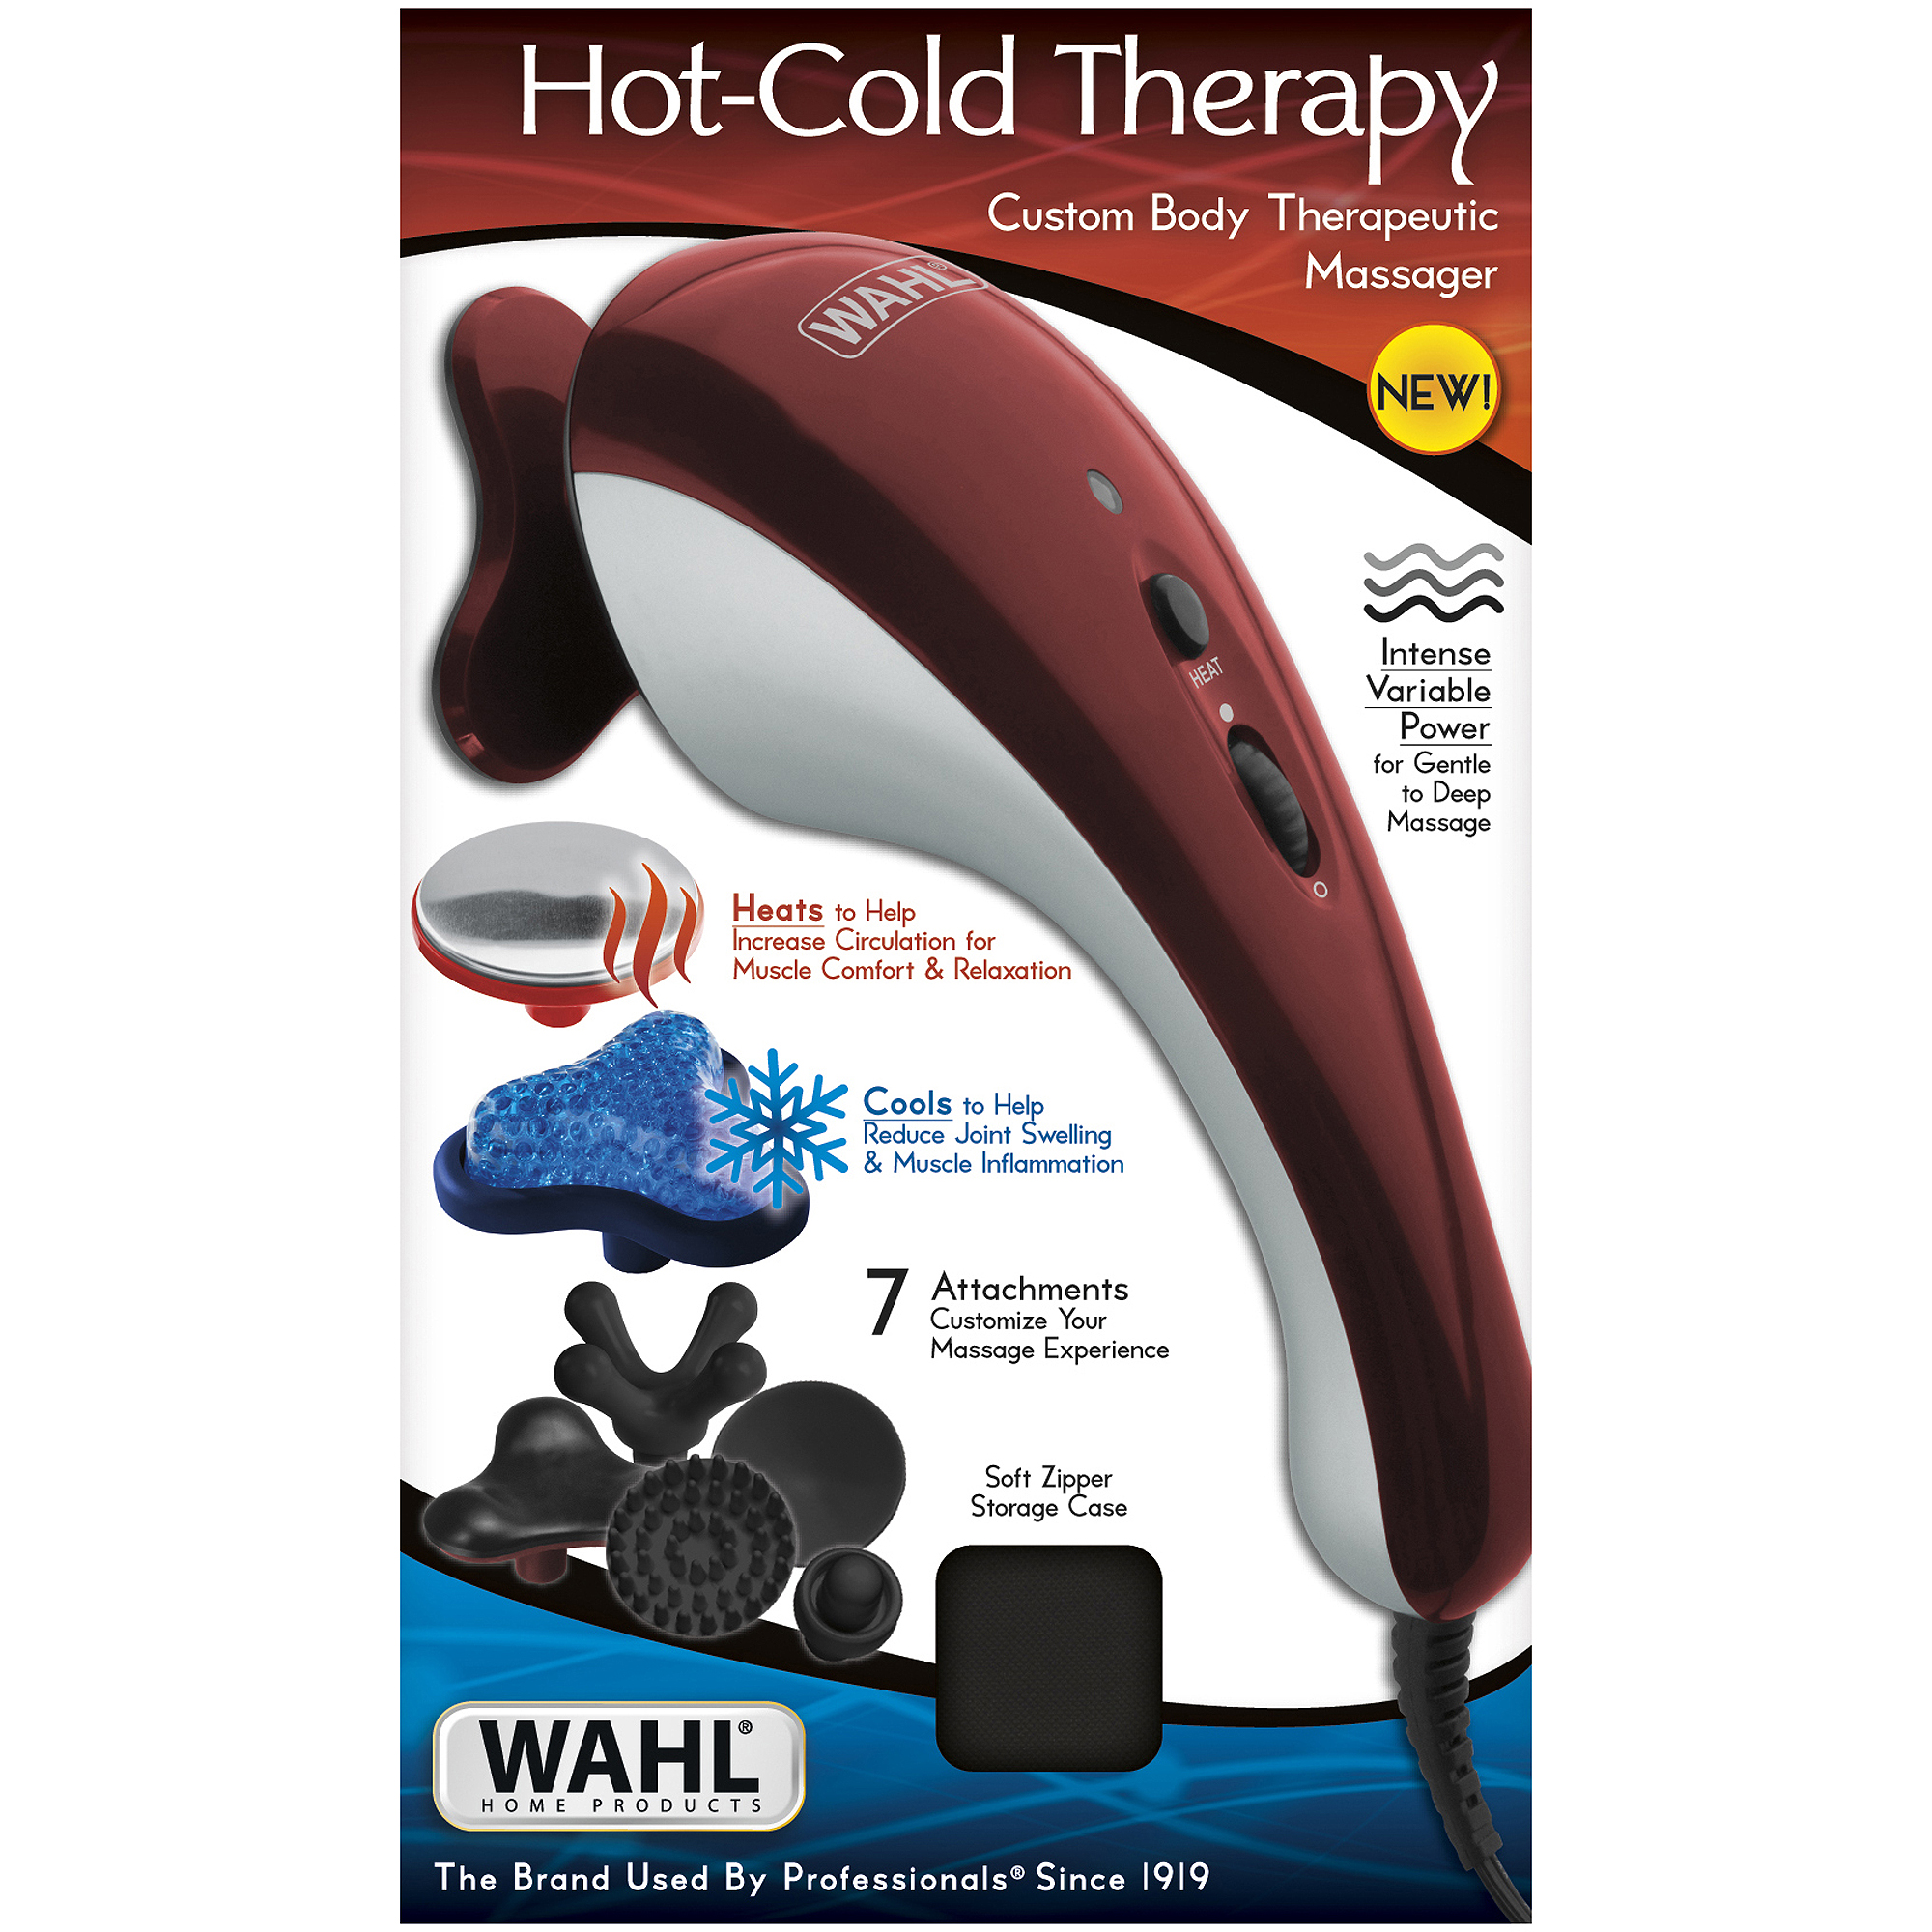 Wahl Hot-Cold Therapy Custom Body Therapeutic Massager